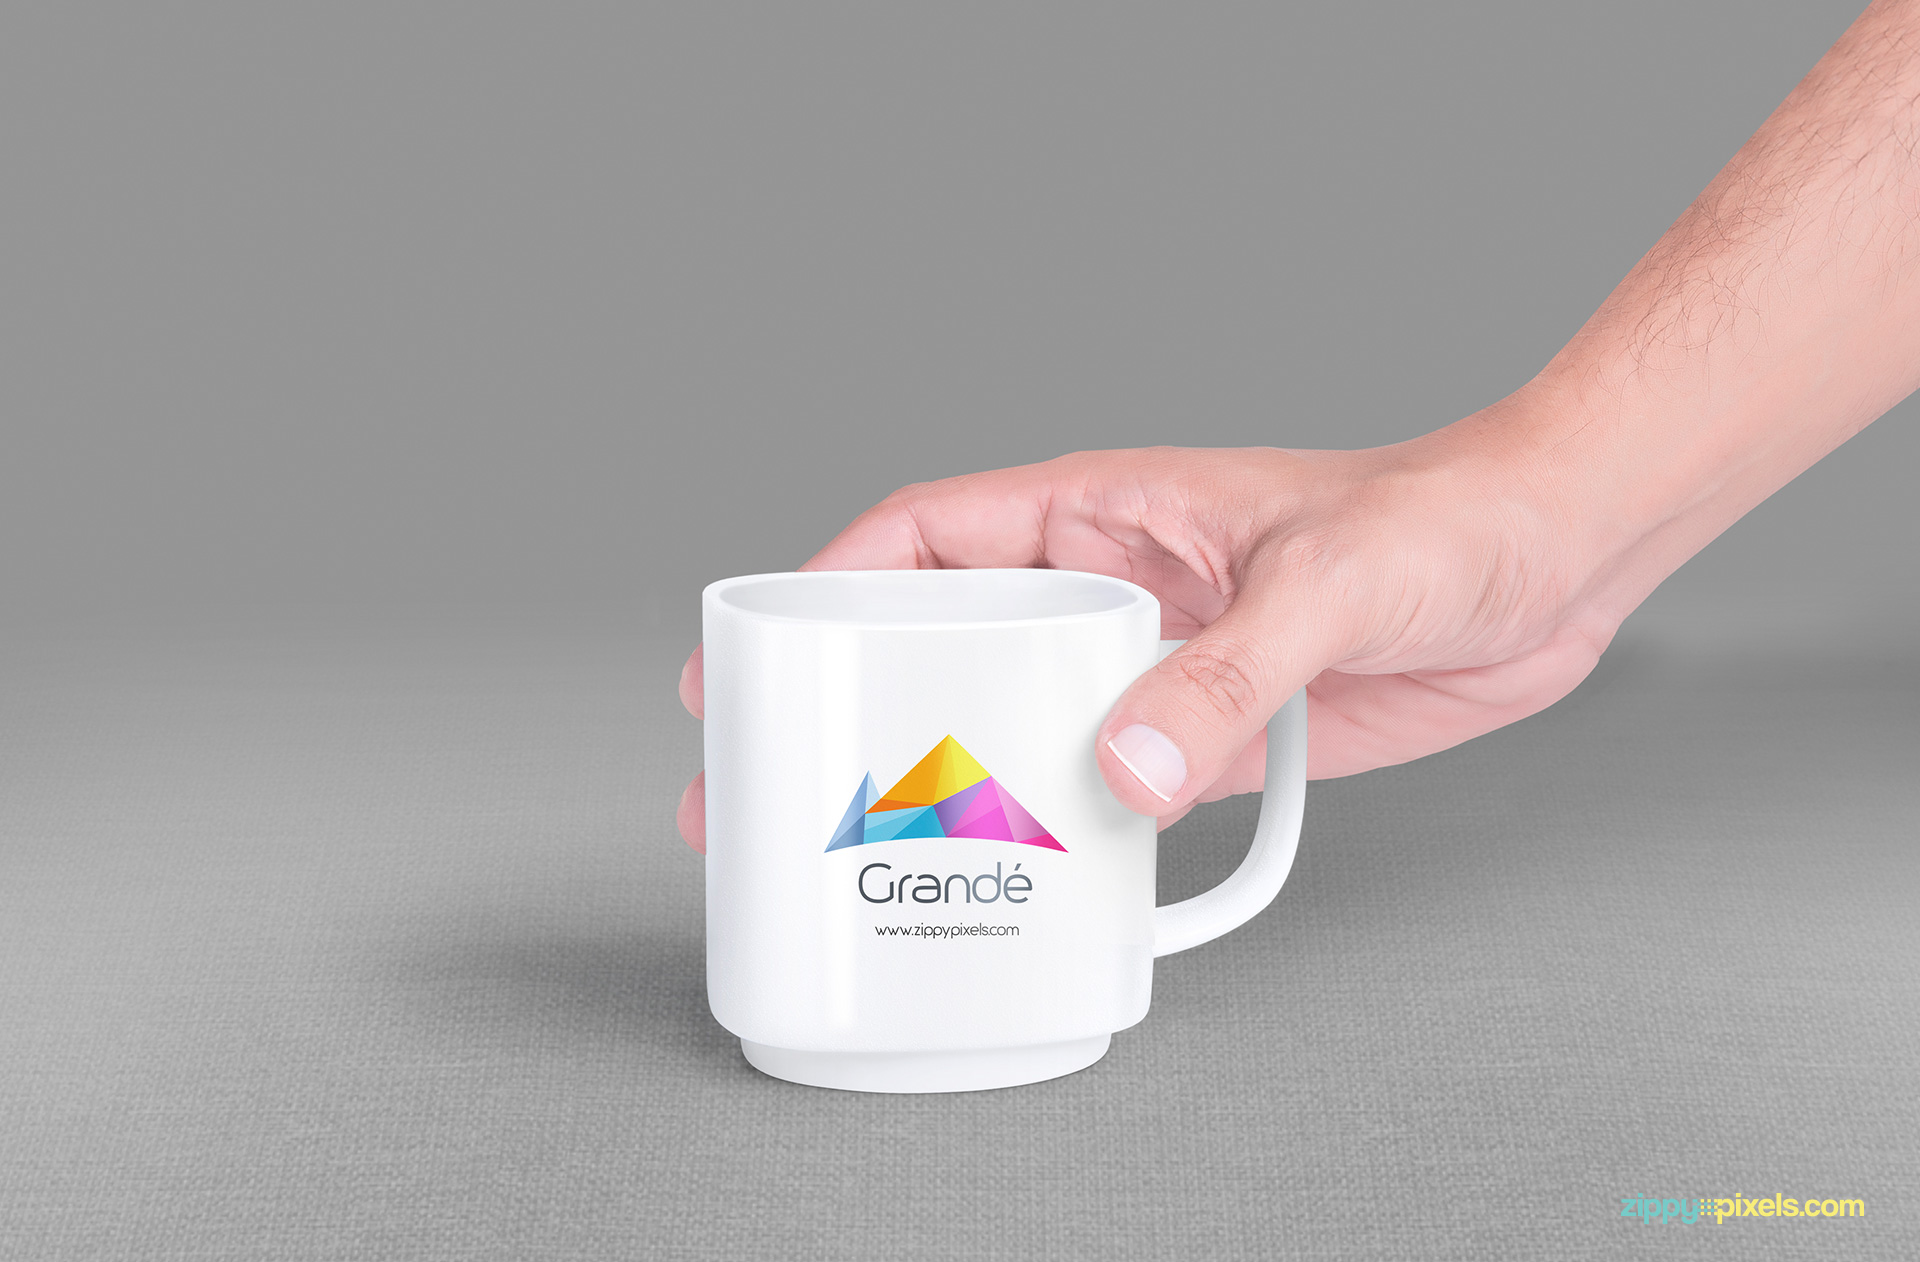 Mug mock-up PSD to place your logo designs.